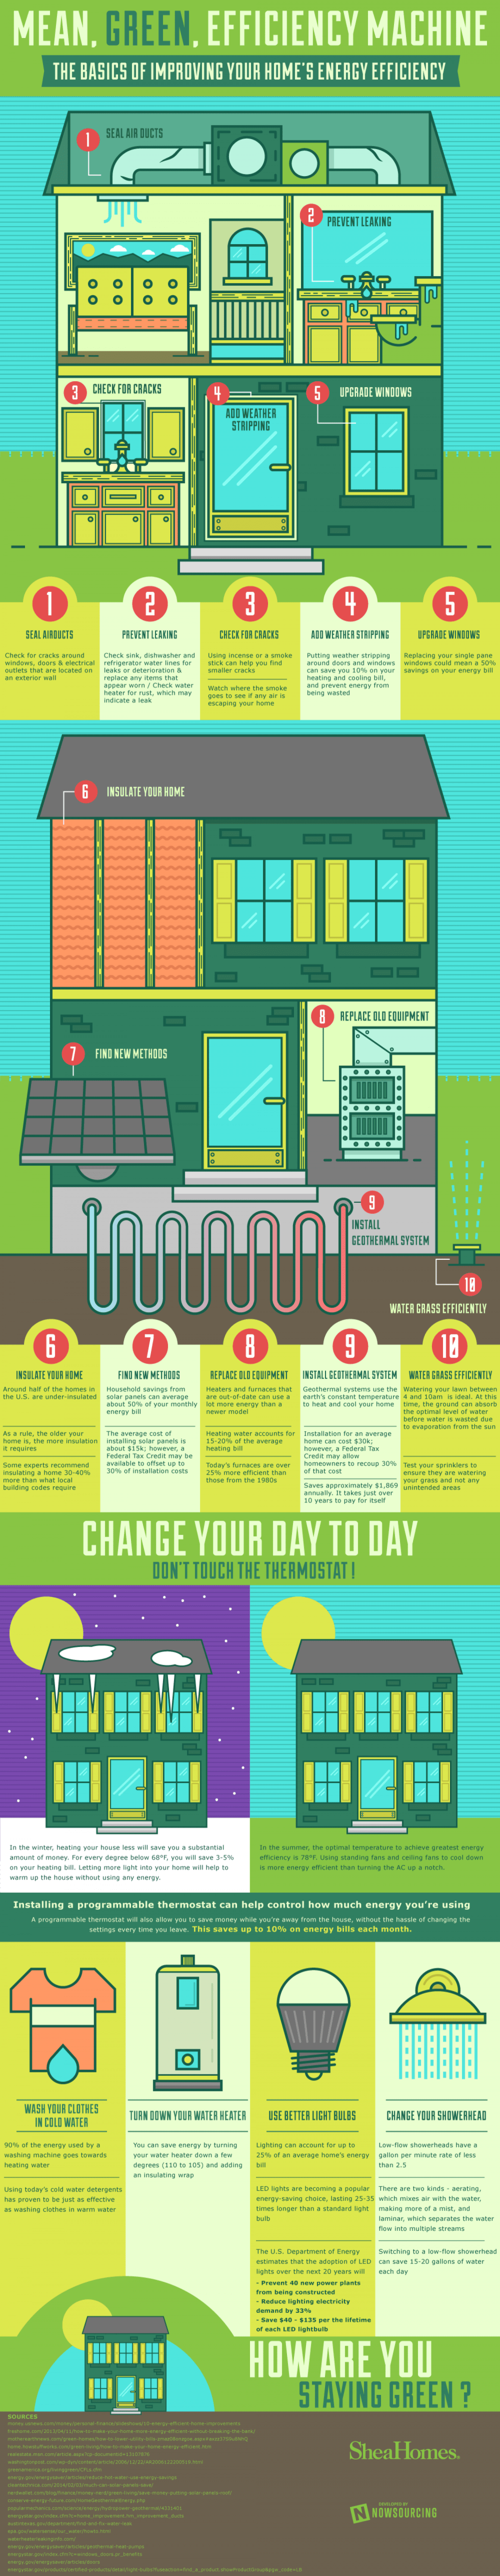 Improving Your Energy Efficiency Infographic